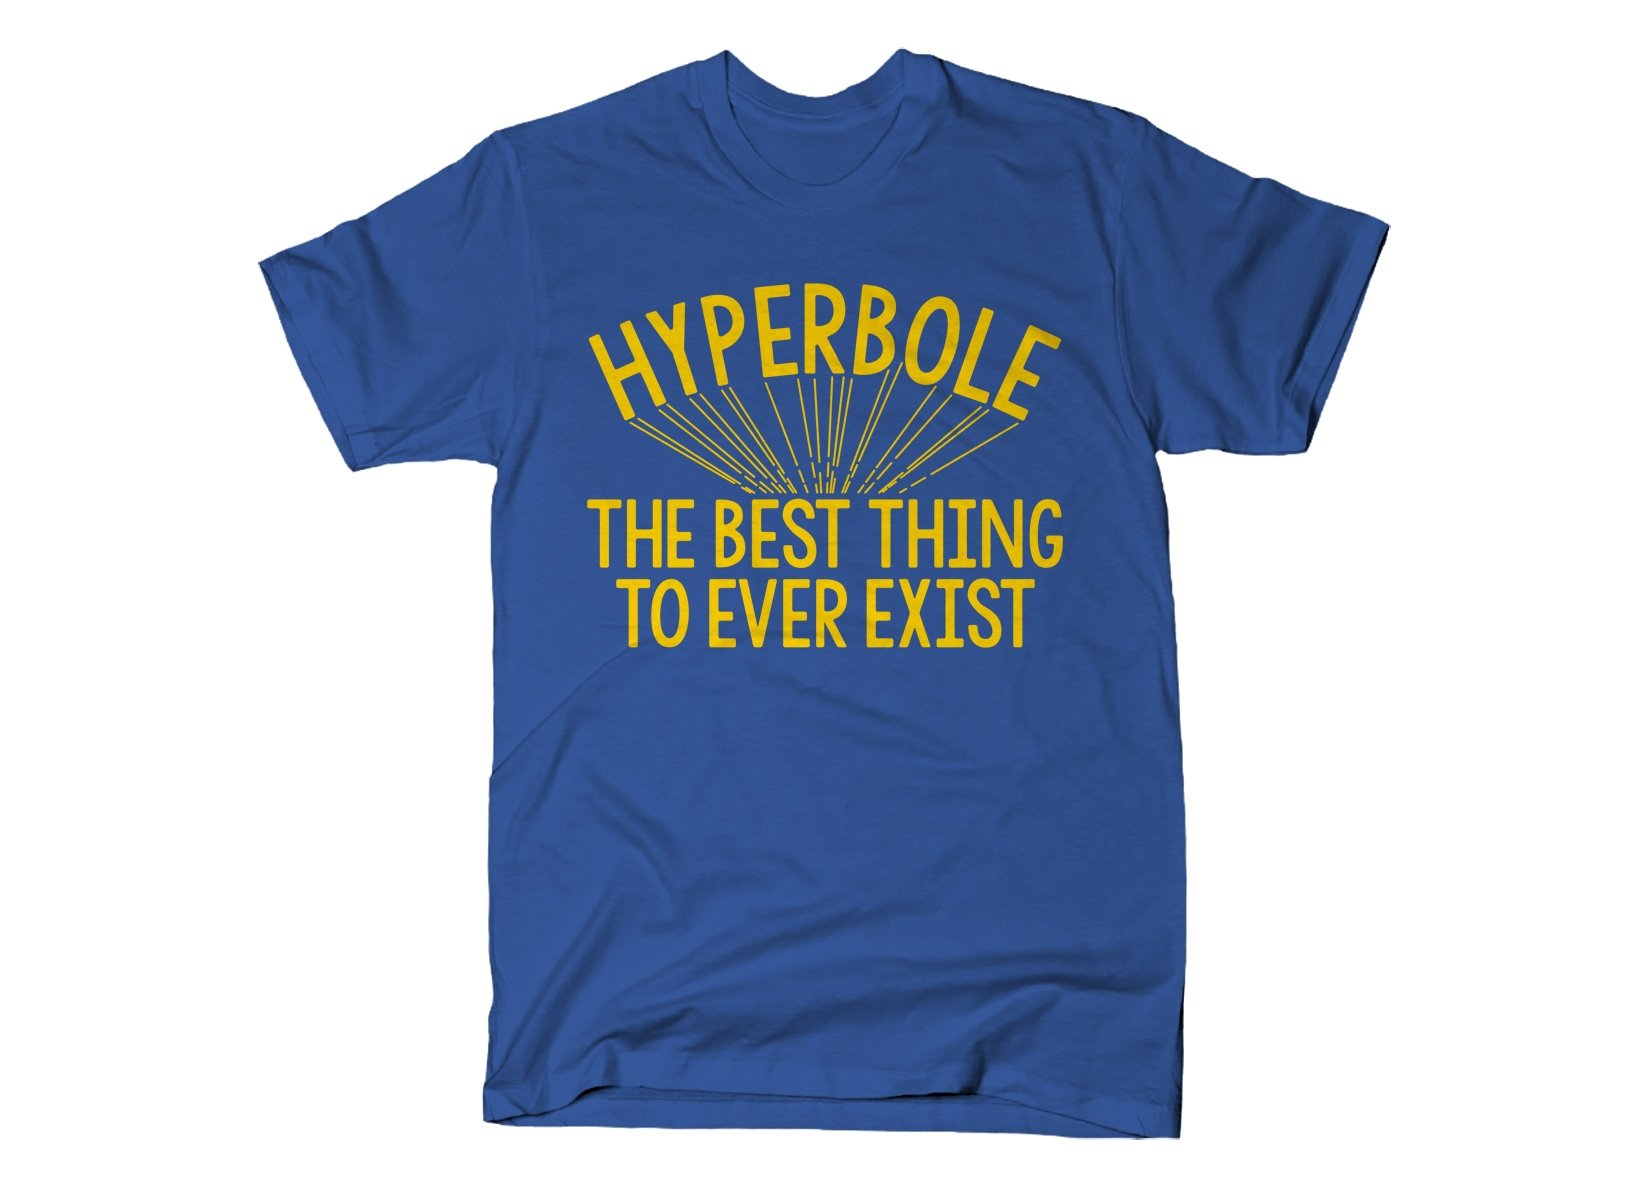 Hyperbole The Best Thing To Ever Exist on Mens T-Shirt